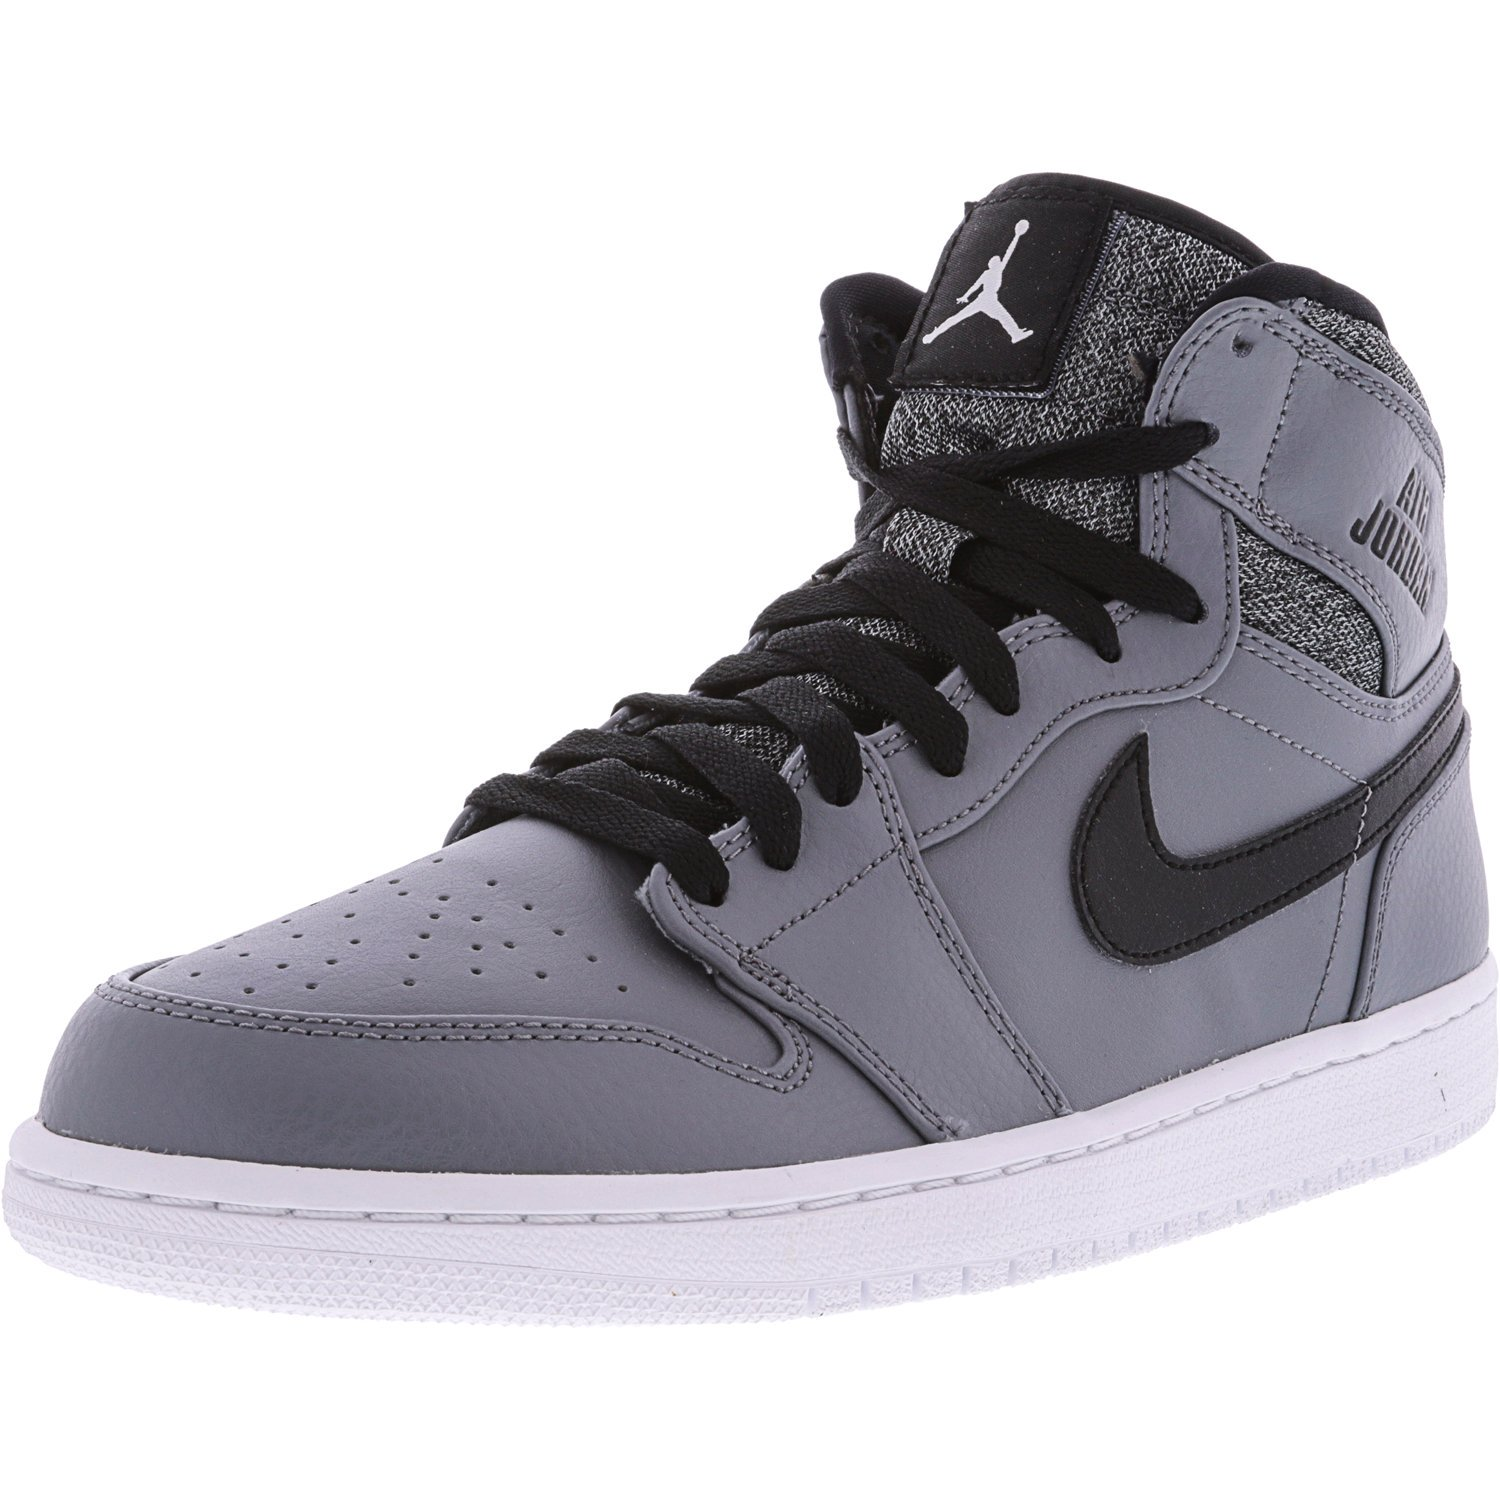 free shipping 000a1 79824 Nike Men's Air Jordan 1 Retro High Deep Royal / Black White High-Top  Basketball Shoe - 12M